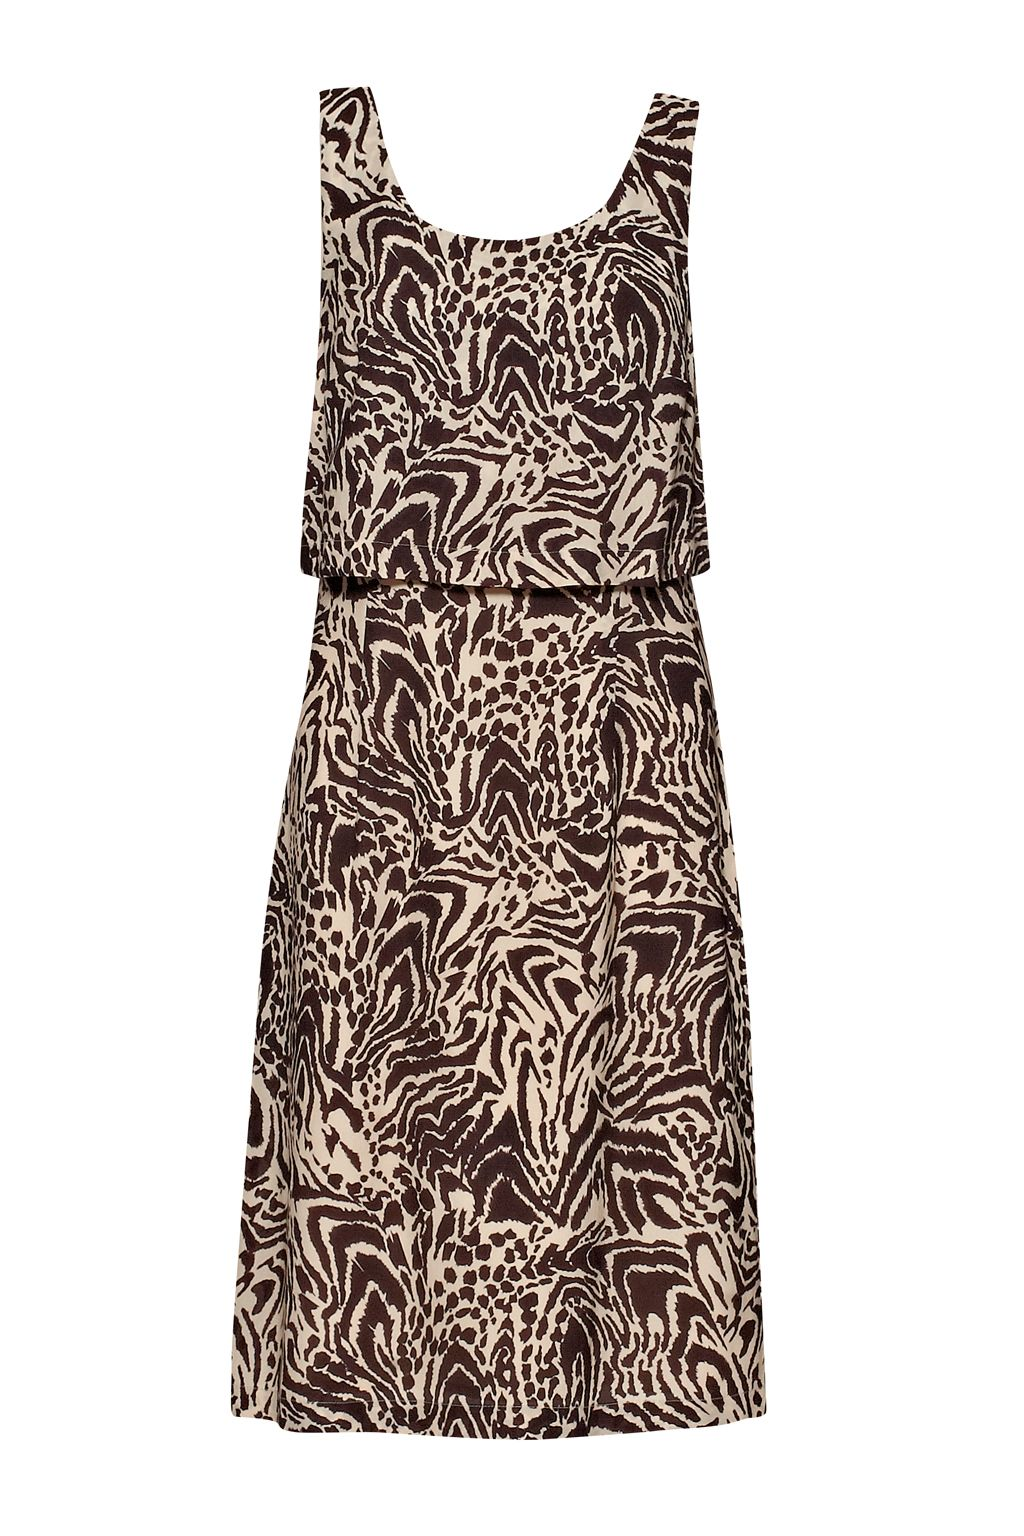 Great Plains Great Plains Simba Print Layer Dress, Brown